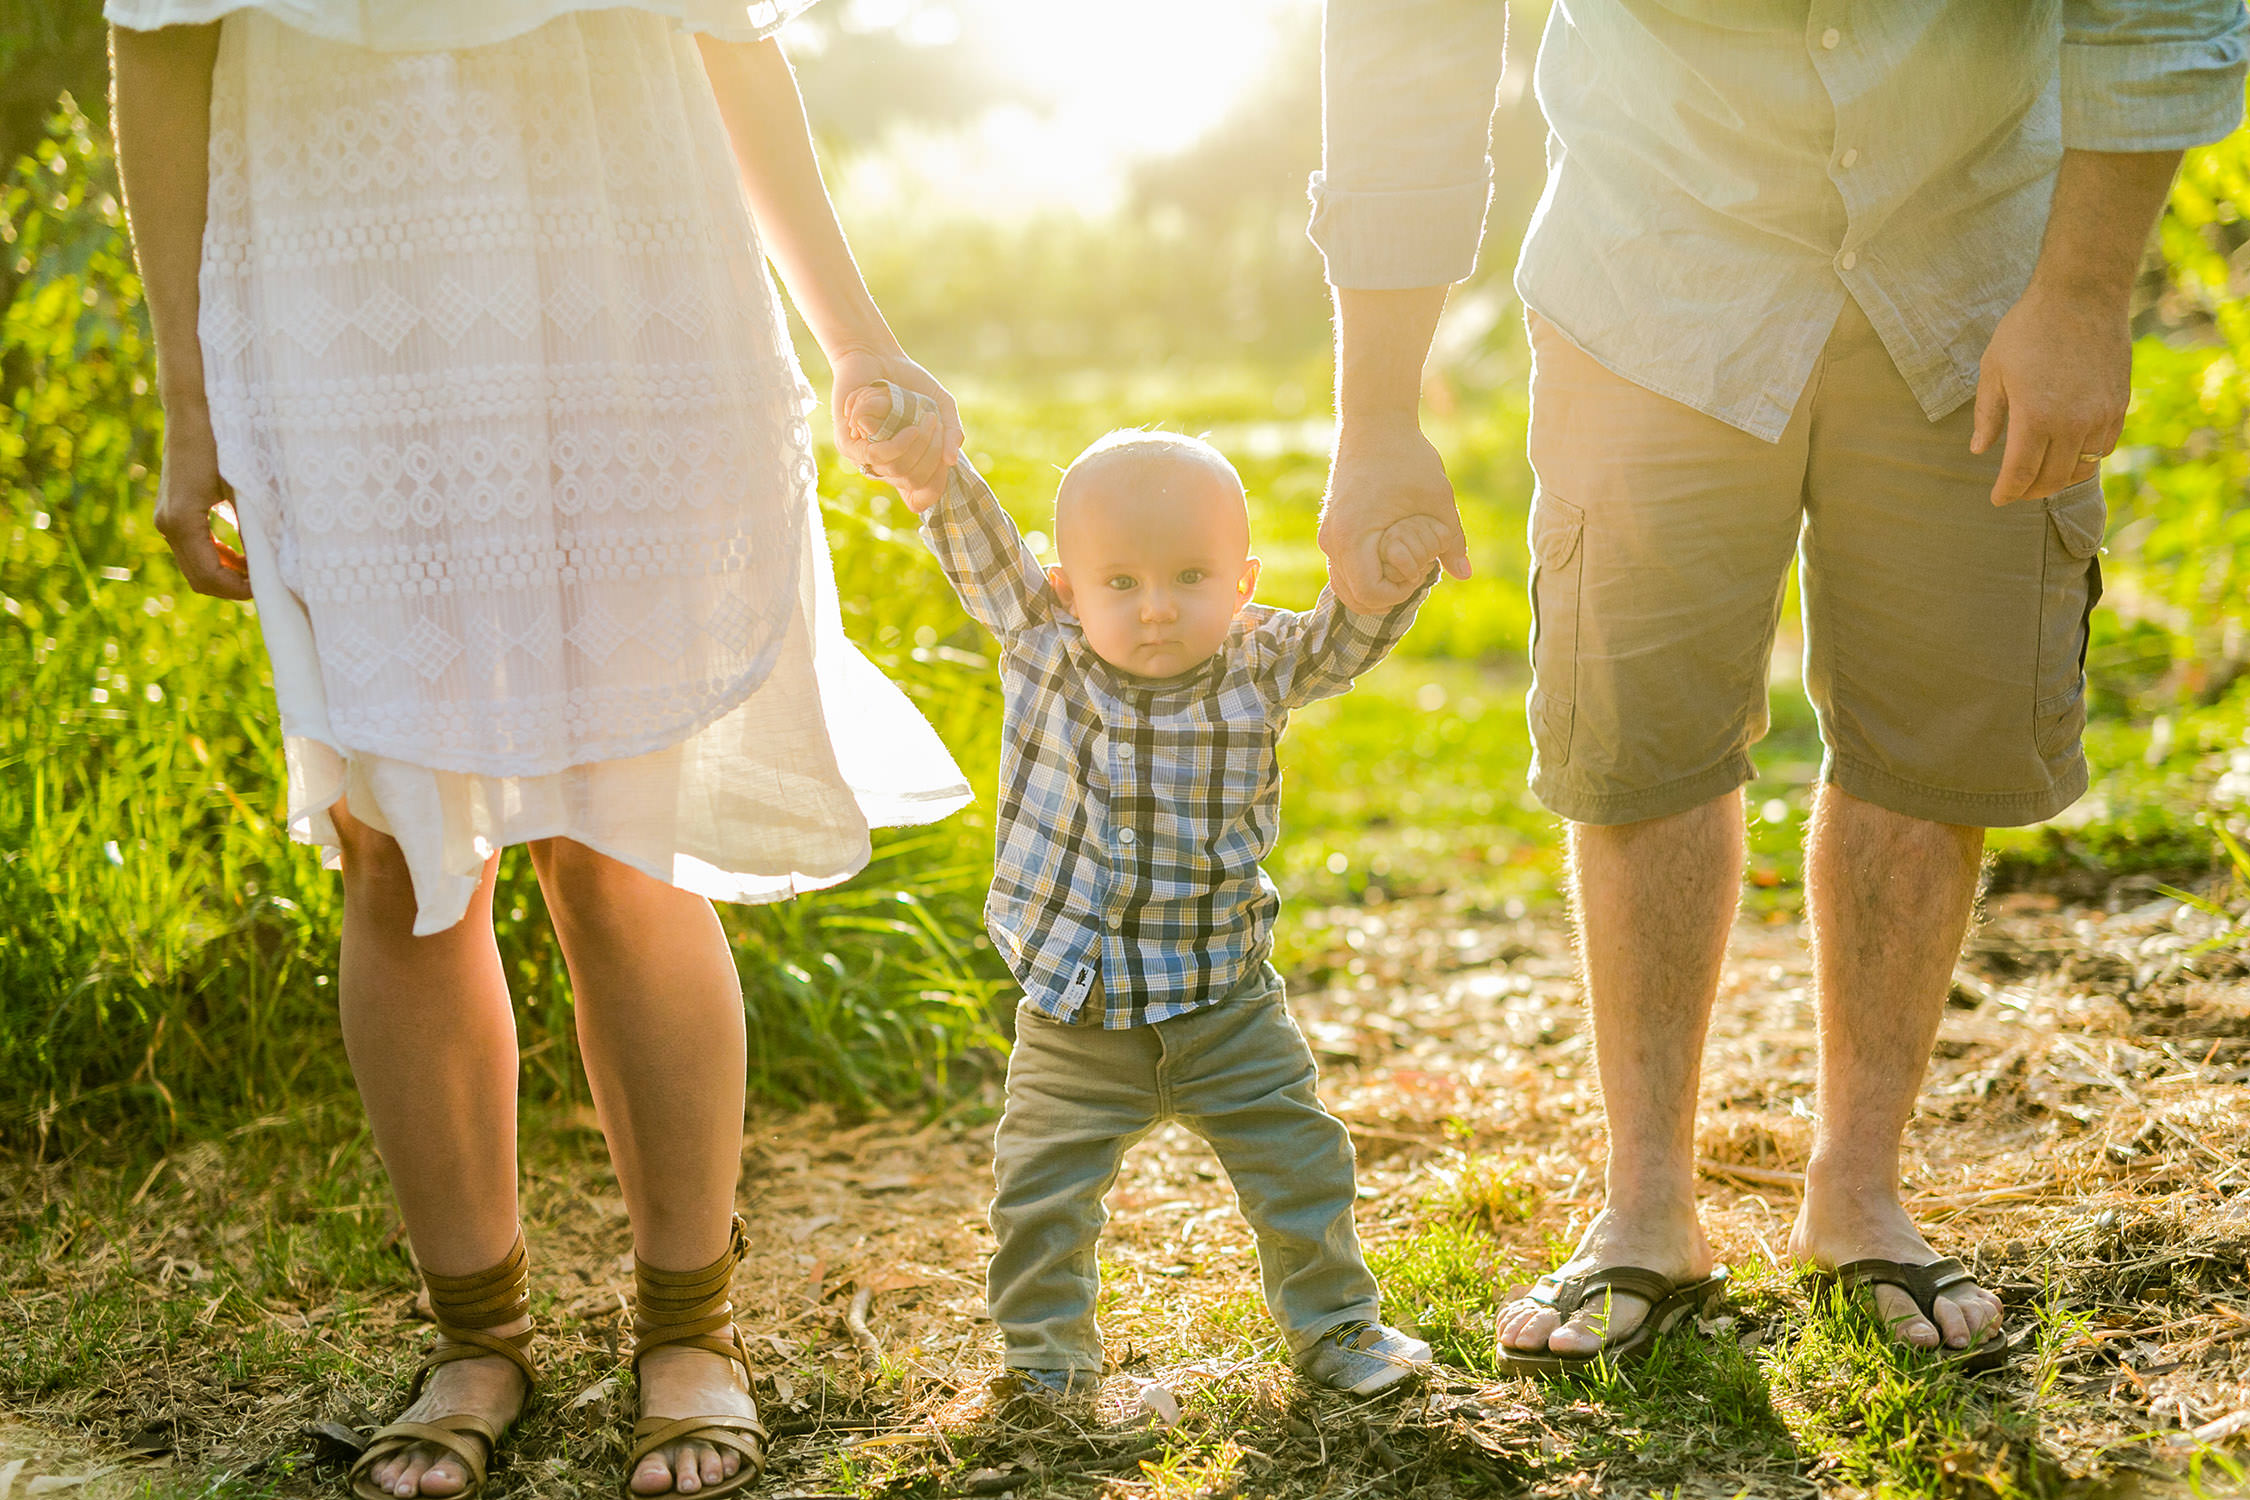 Family Session at Central Park in Huntington Beach, CA